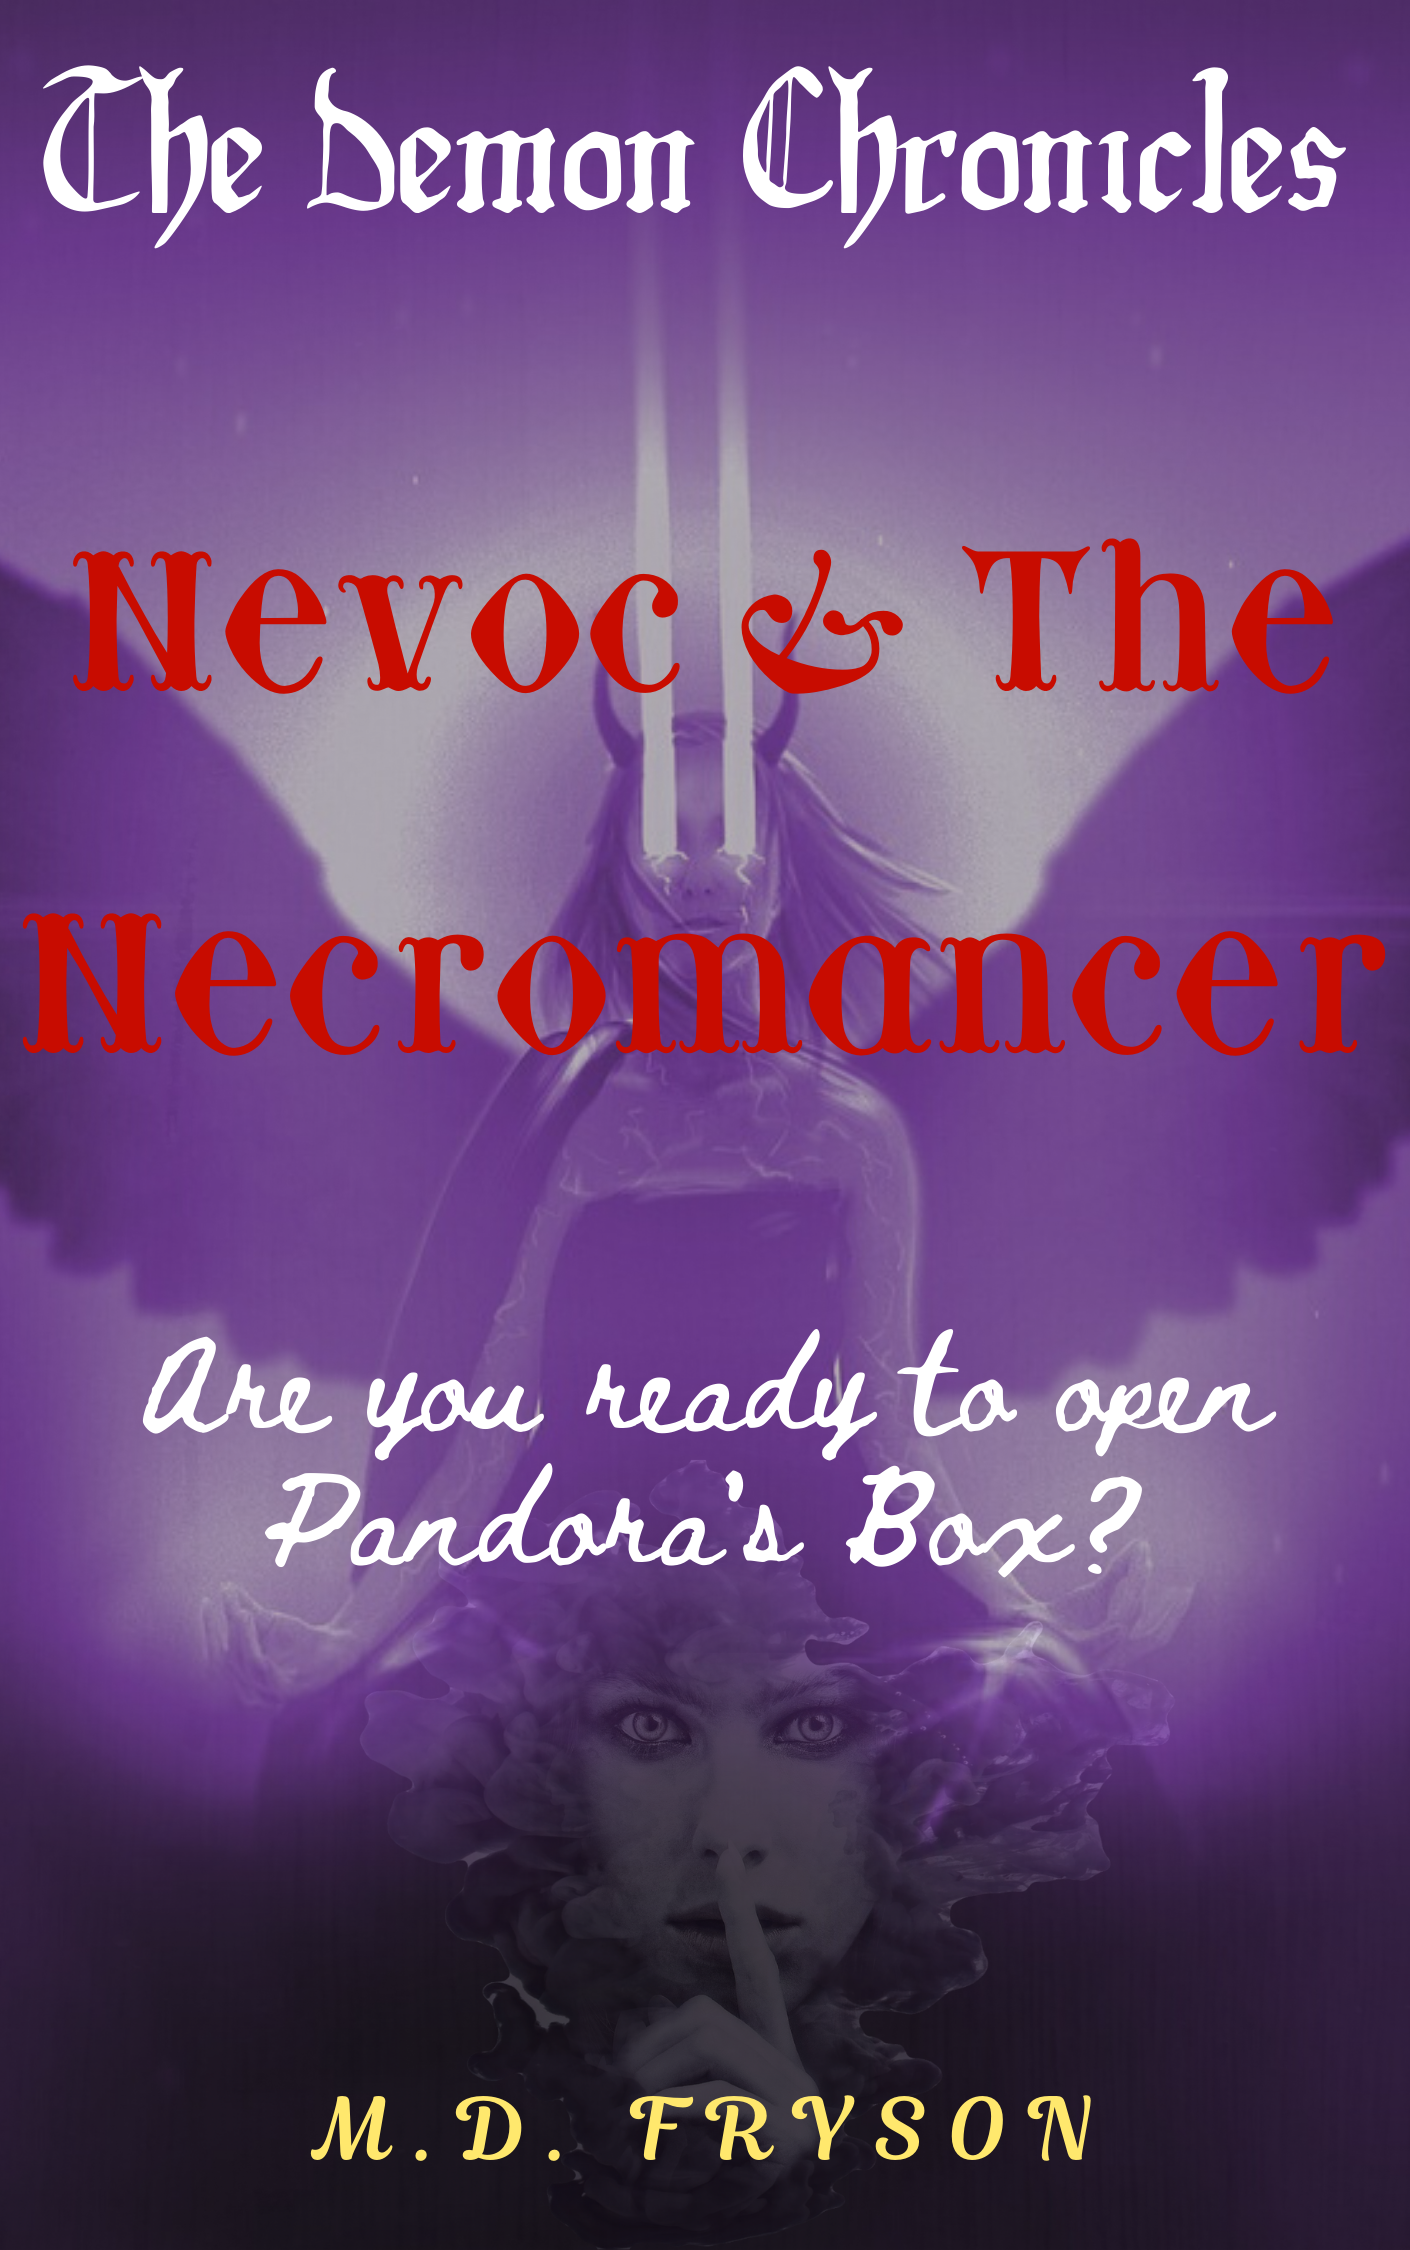 Nevoc & The Necromancer